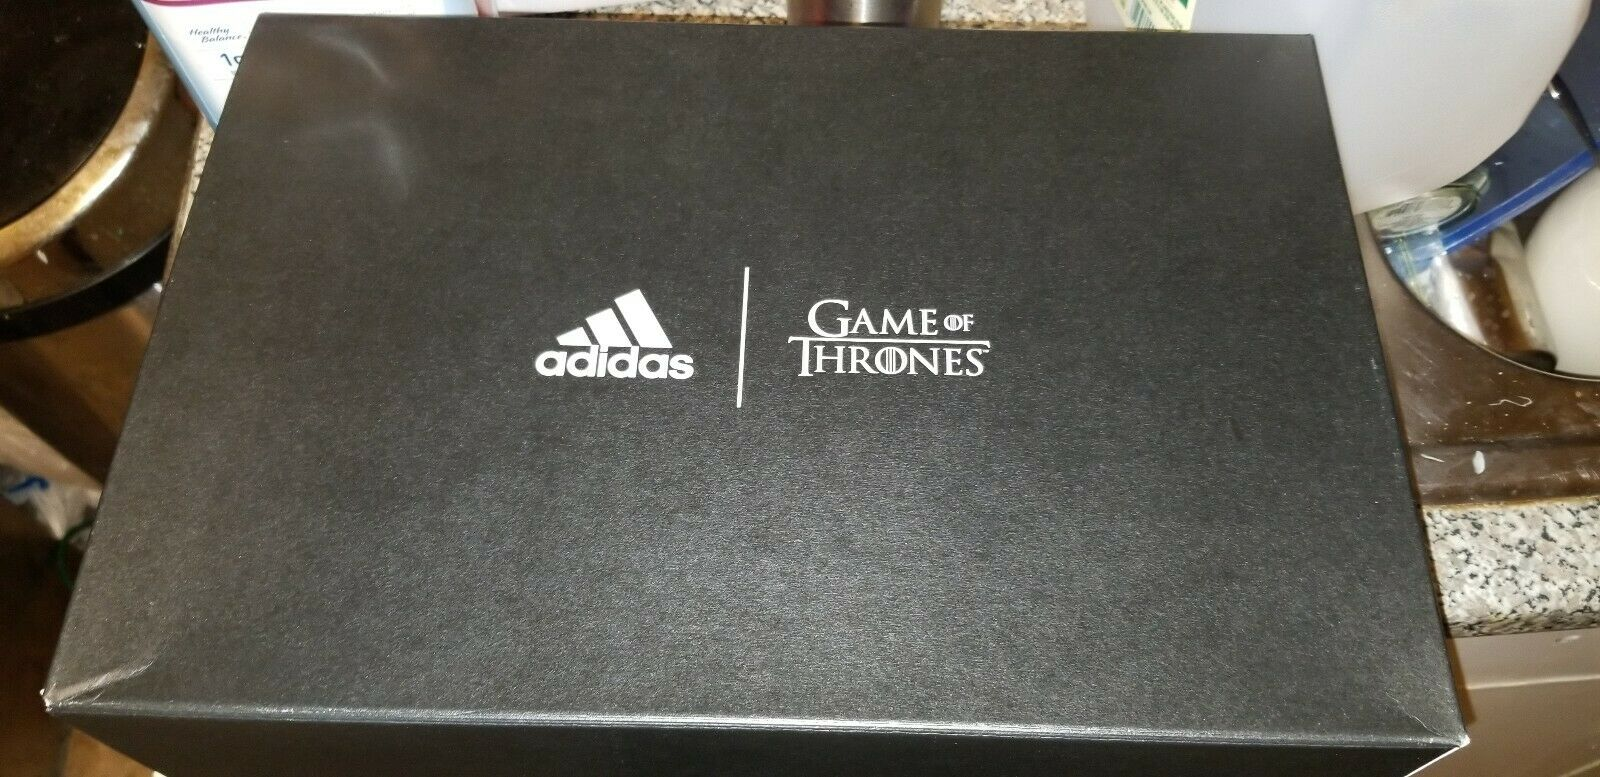 Adidas Ultra  Boost 4.0 Game of Thrones Targaryen EE3711 bianca donna Dimensione  10  conveniente